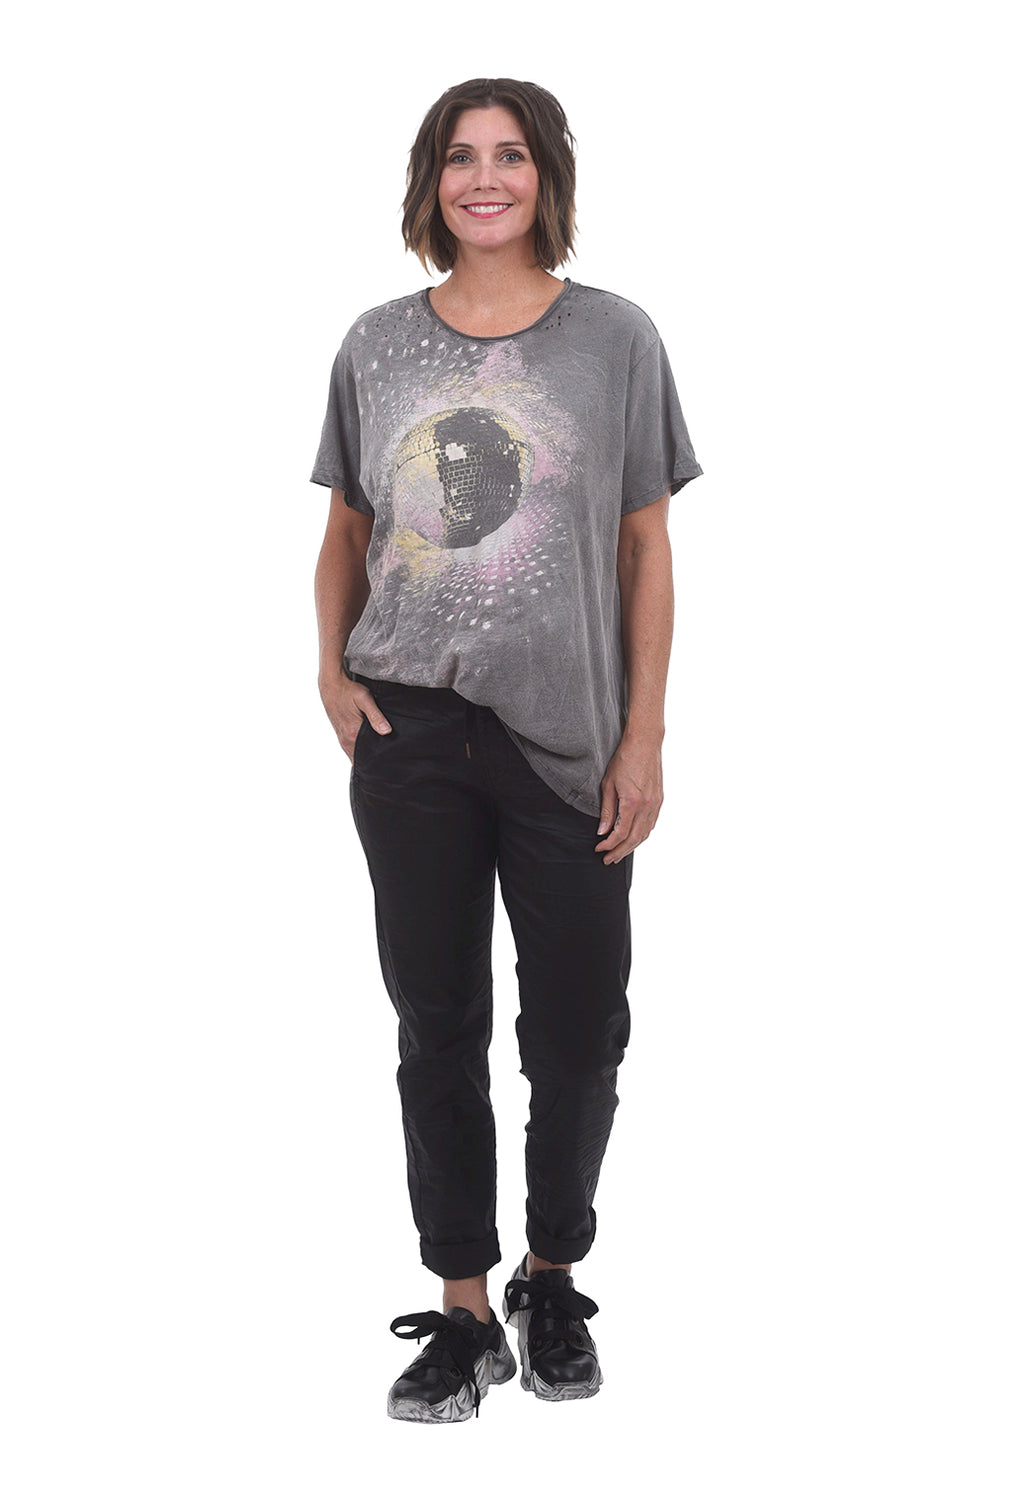 Magnolia Pearl New Boyfriend Tee, Ozzy Gray Disco One Size Gray